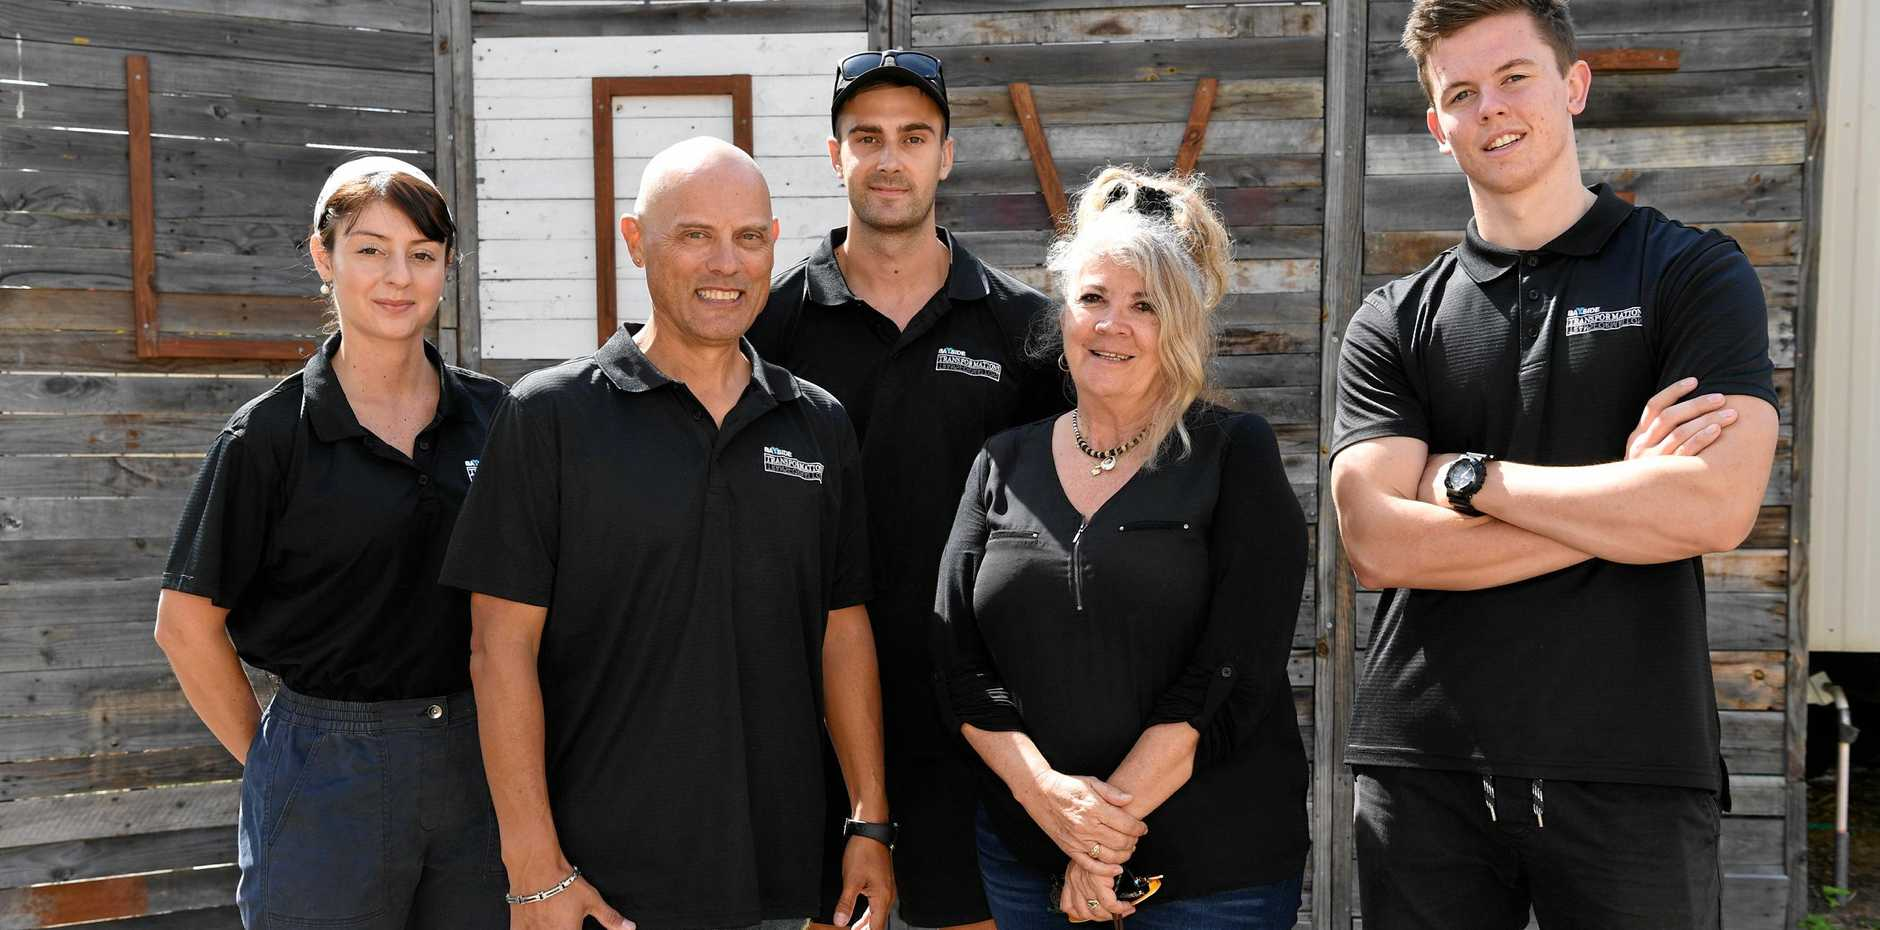 Bayside Transformations - graduates Elizabeth Pinzon, Hoani Heremaia, Josh Spinks and Jacob Wright with CEO Tina Davie.